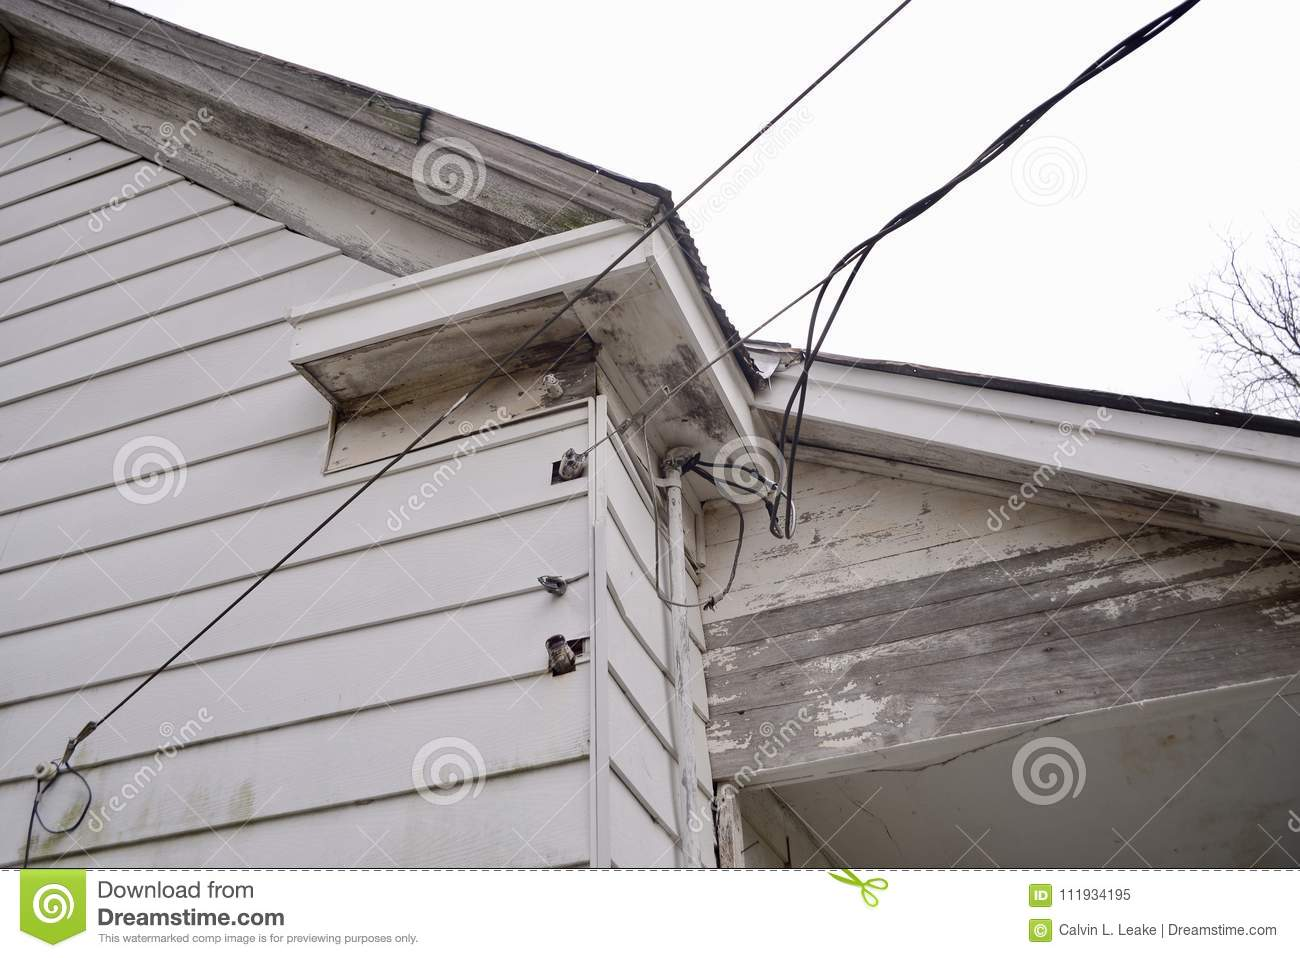 Electric Power Lines To A House Stock Image - Image of bulb, bright ...